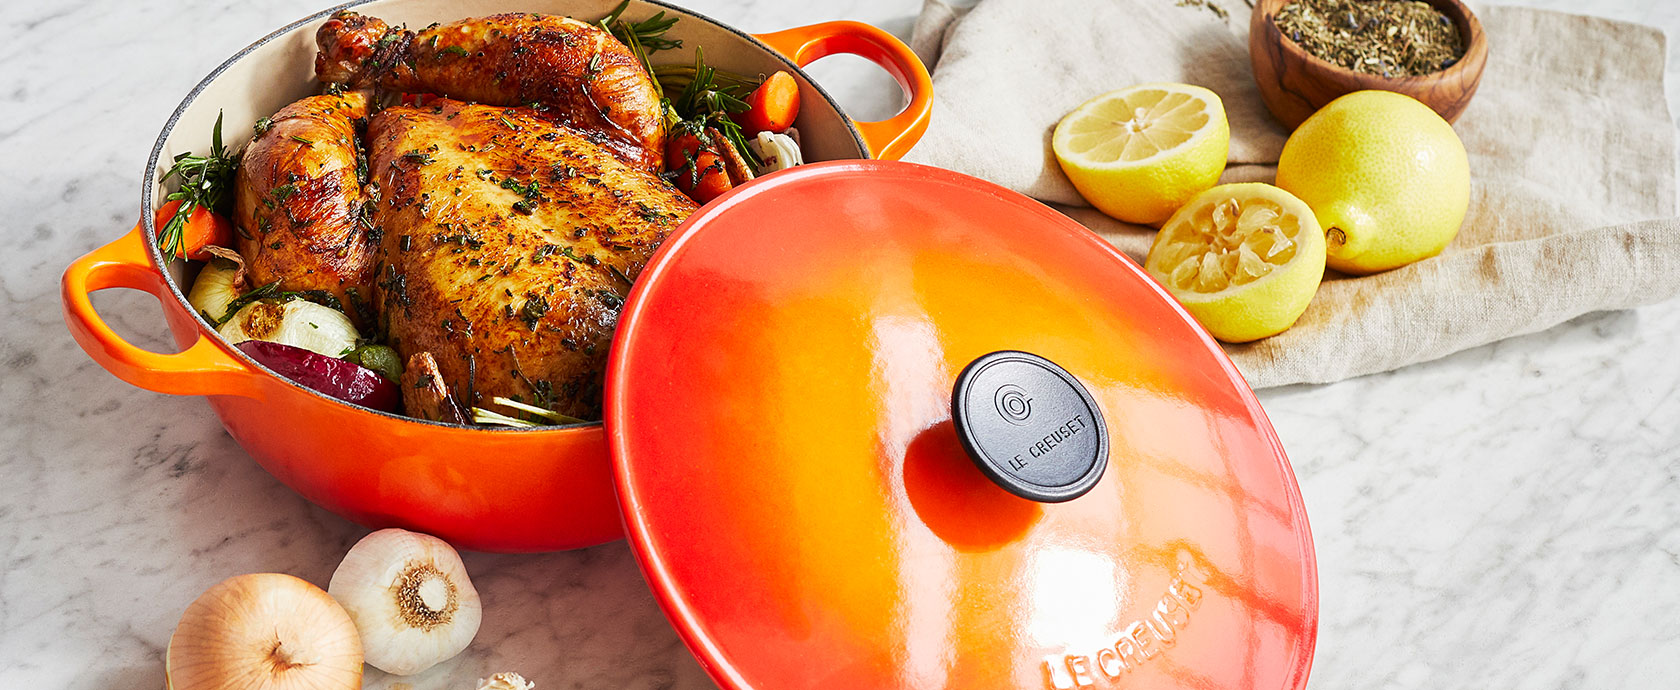 cookware flash sale up to 70% off